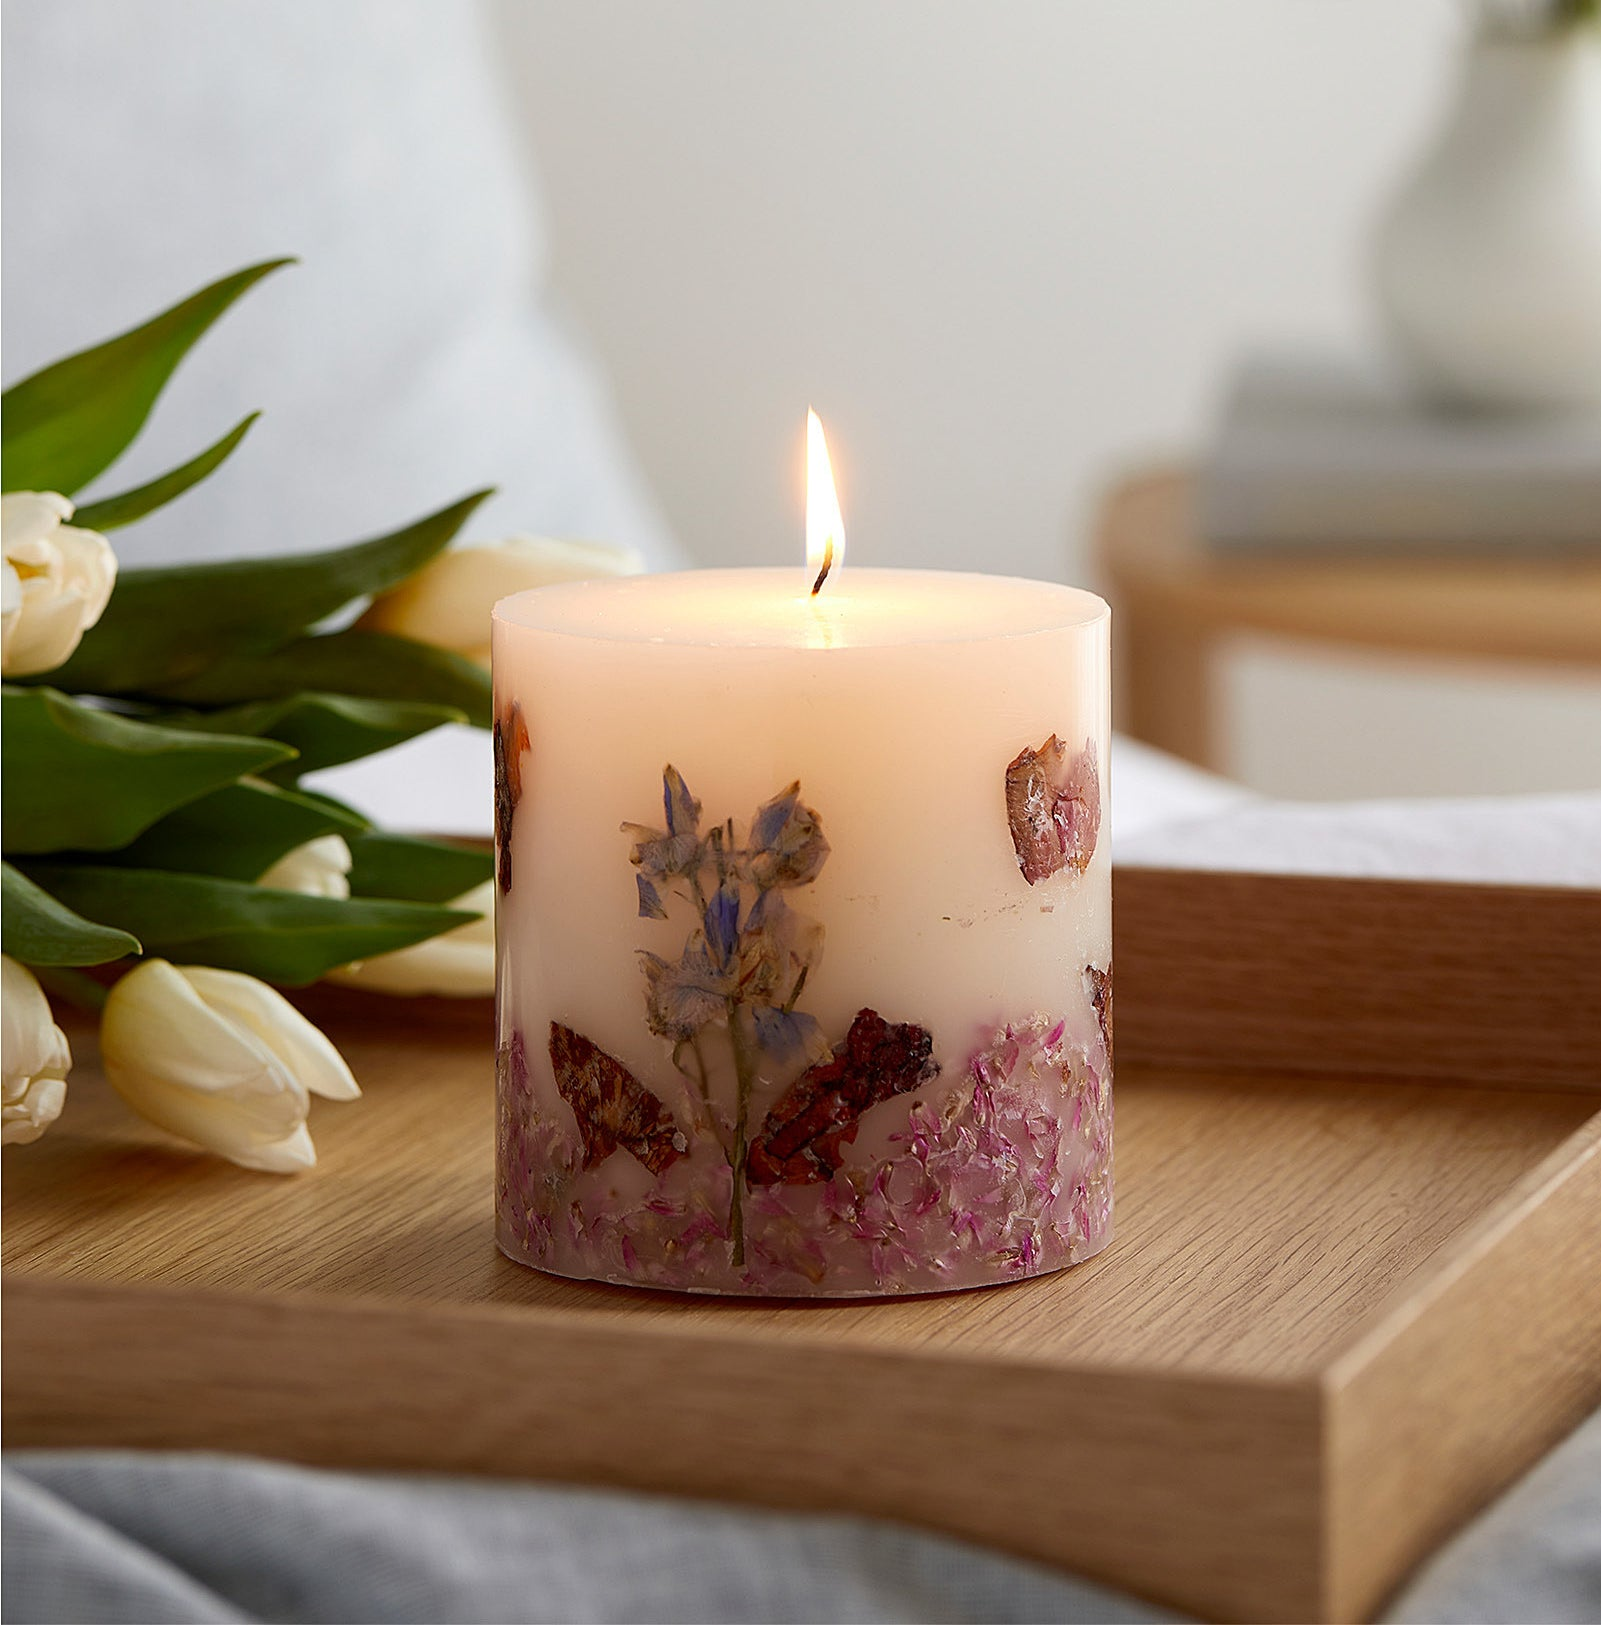 a lit candle on a tray next to a bouquet of tulips